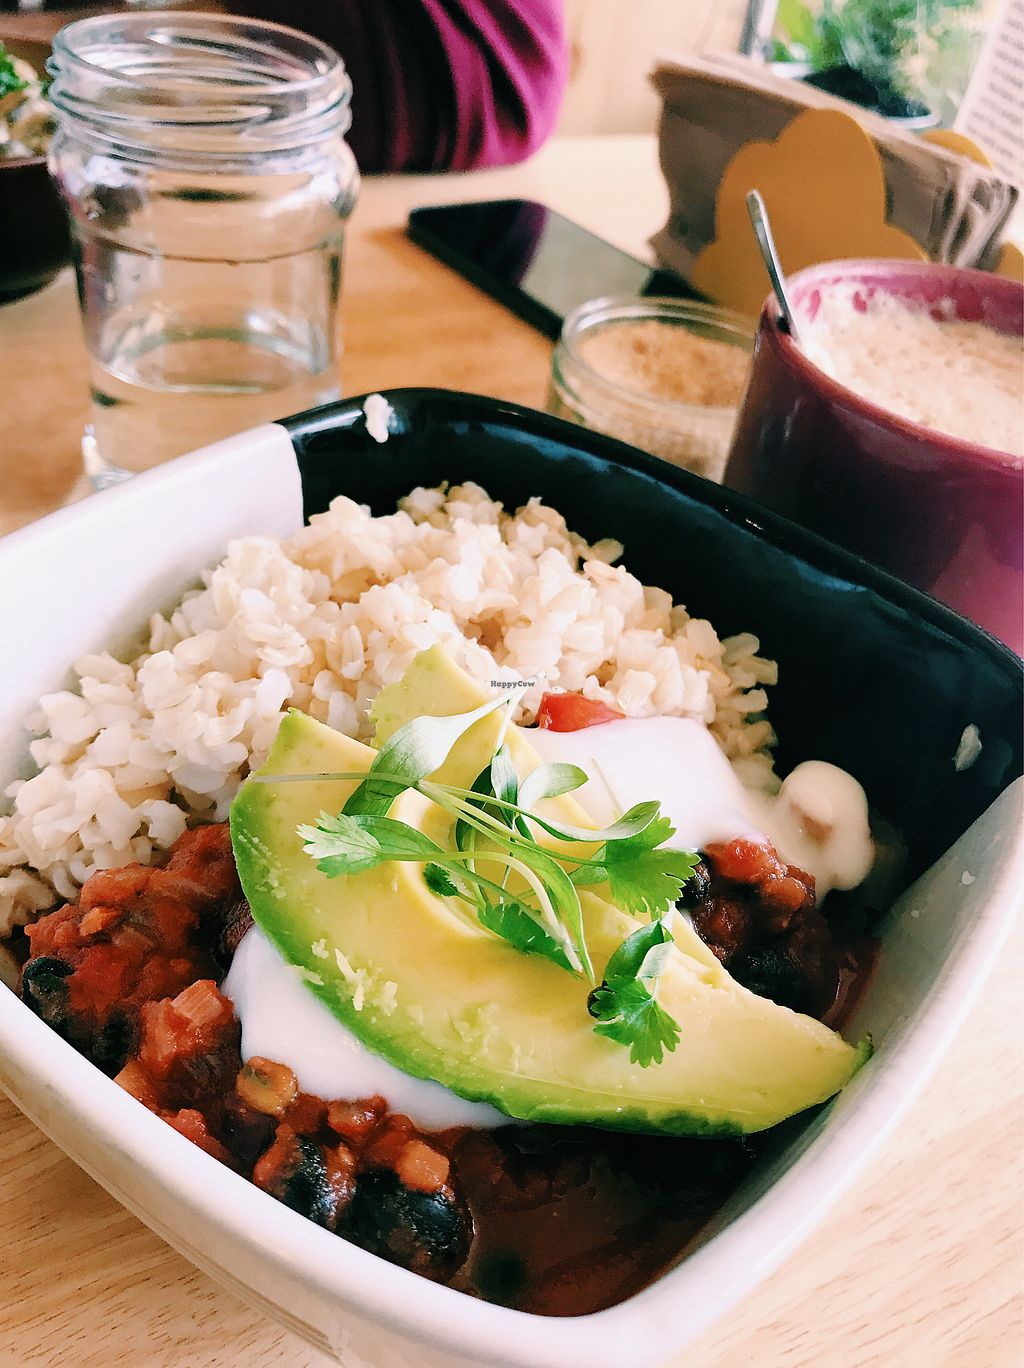 """Photo of Mad Cucumber - Vegan Lounge  by <a href=""""/members/profile/CristinaBrull"""">CristinaBrull</a> <br/>Five Bean Chili with Rice and Soya Latte <br/> August 1, 2017  - <a href='/contact/abuse/image/39613/287777'>Report</a>"""